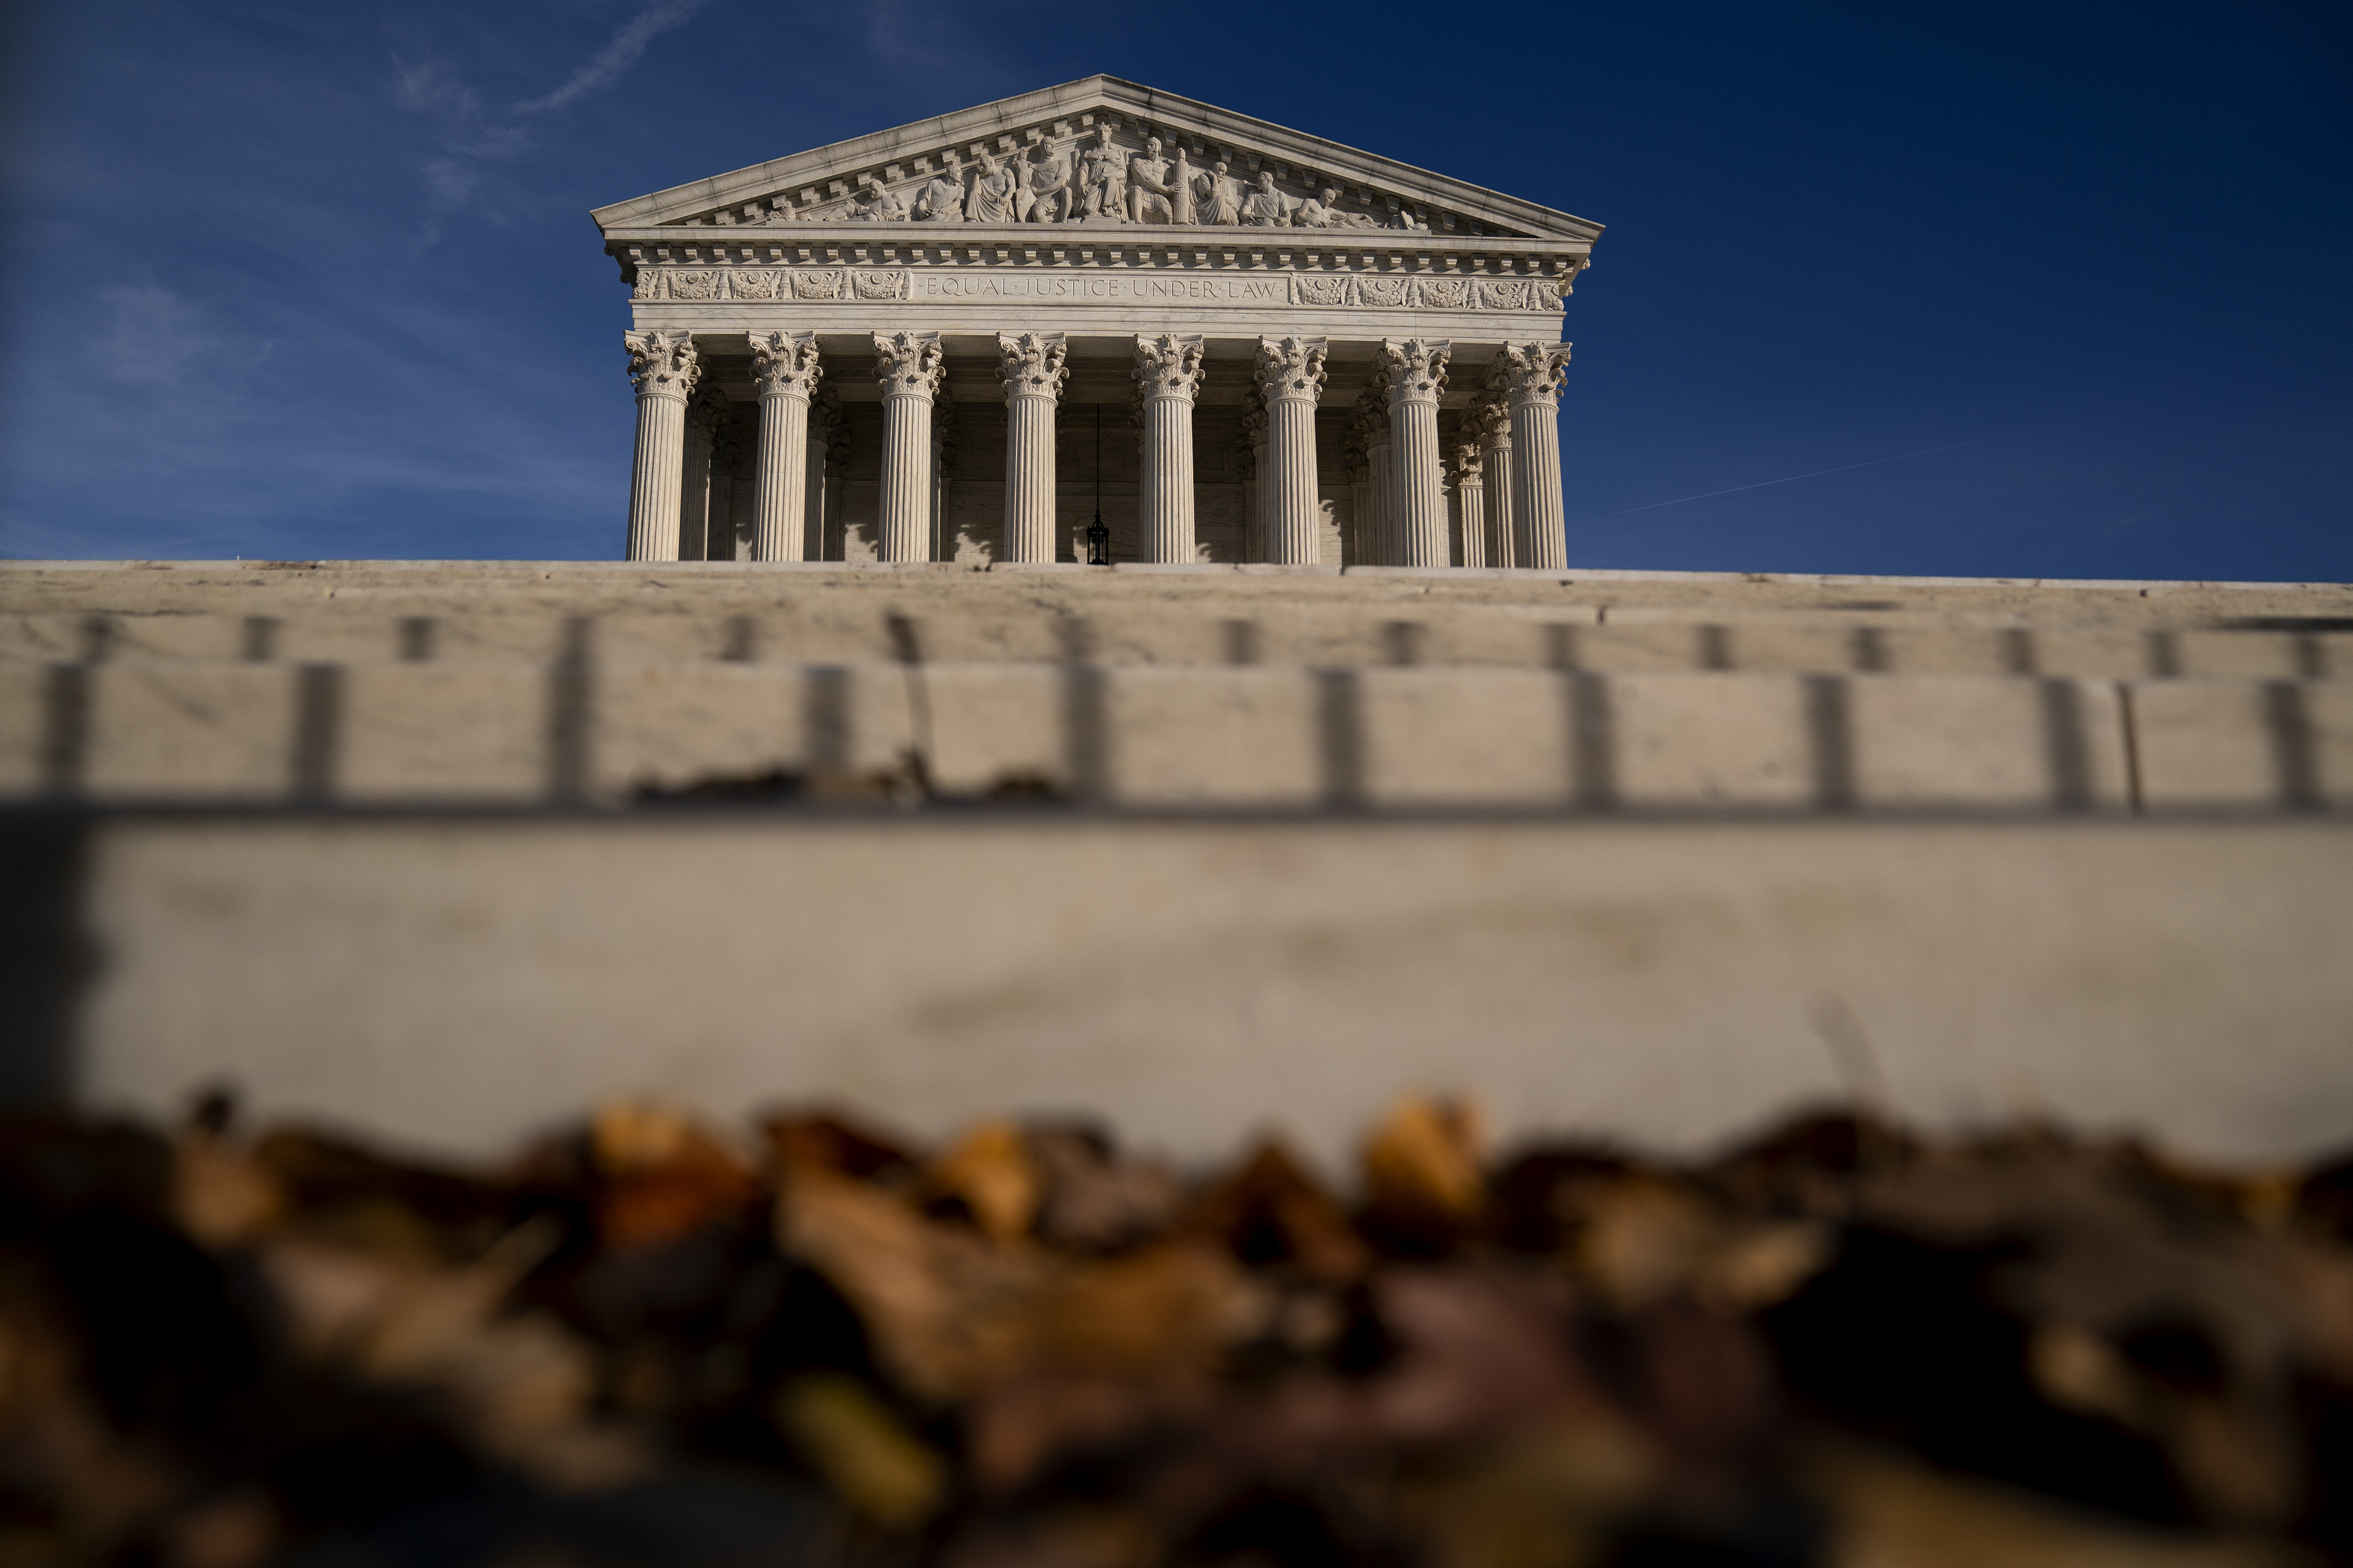 The U.S. Supreme Court building pictured on Dec. 11, 2020 in Washington, D.C.